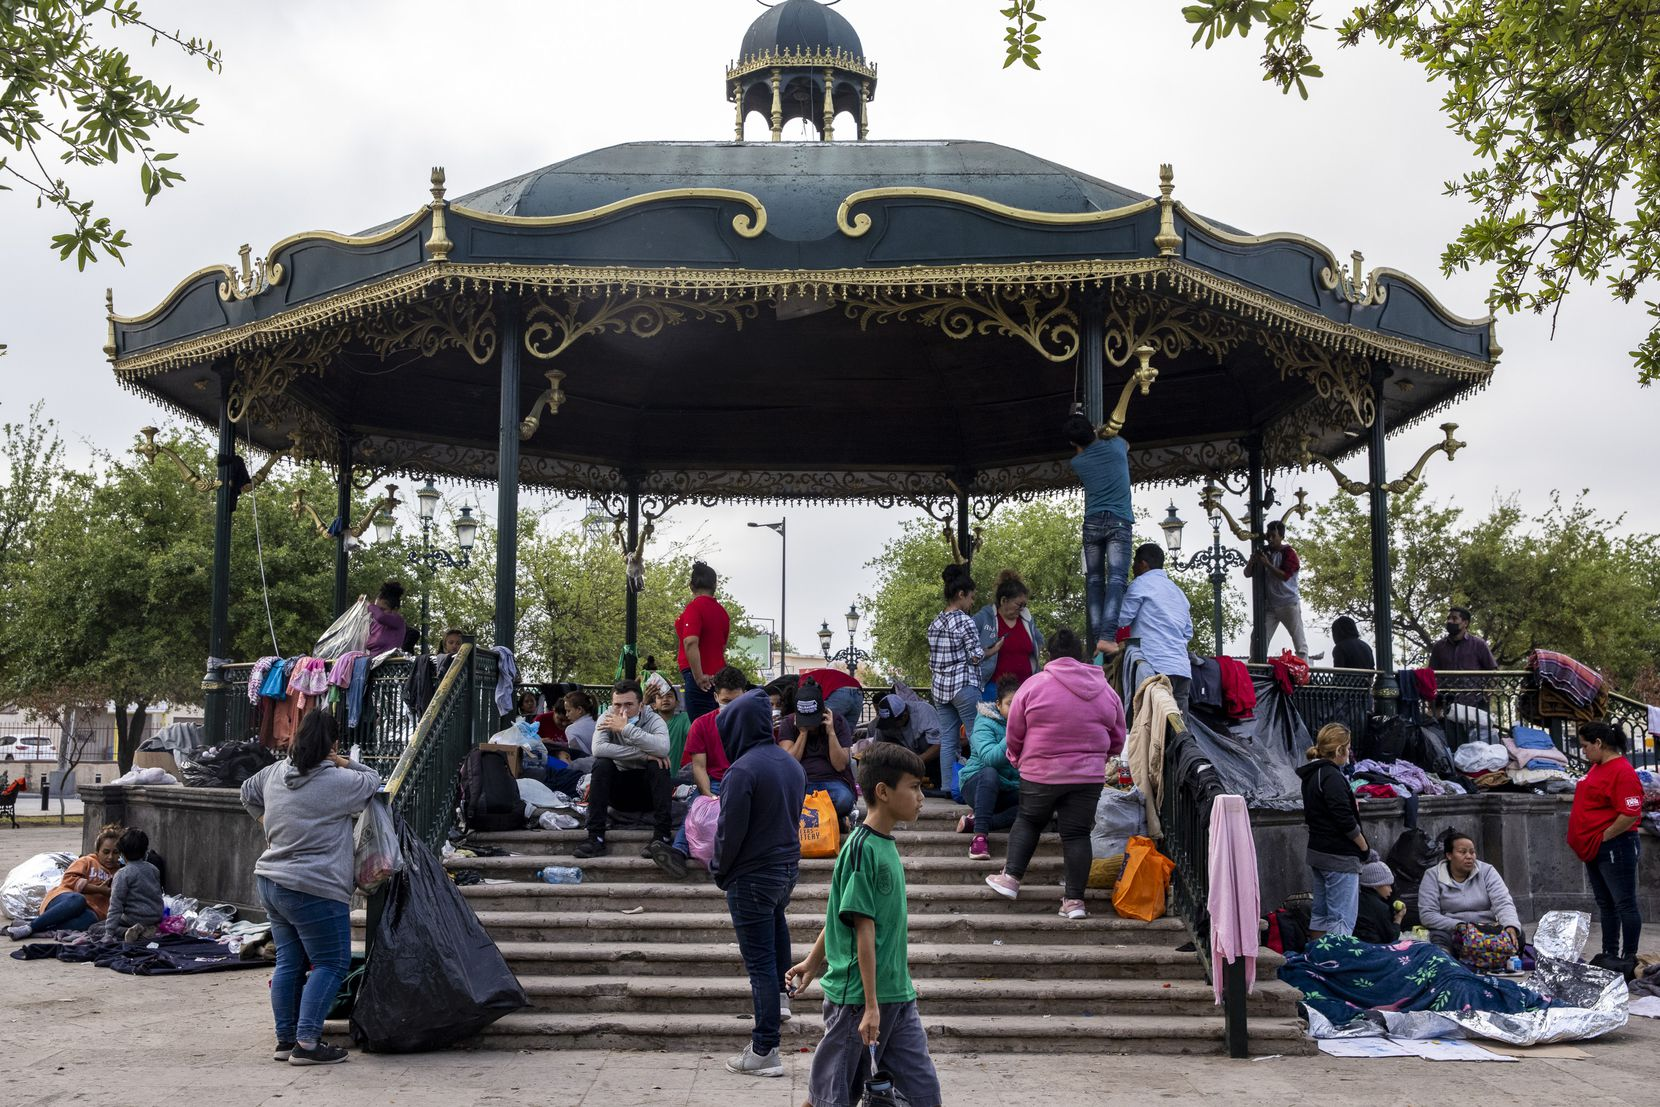 Expelled migrants mill around a gazebo in a public square in the Mexican border city of Reynosa. Migrants have resorted to living at the plaza as the U.S. continues to expel migrants under Title 42 — a pandemic-related public order still in place and left over from the Trump administration.